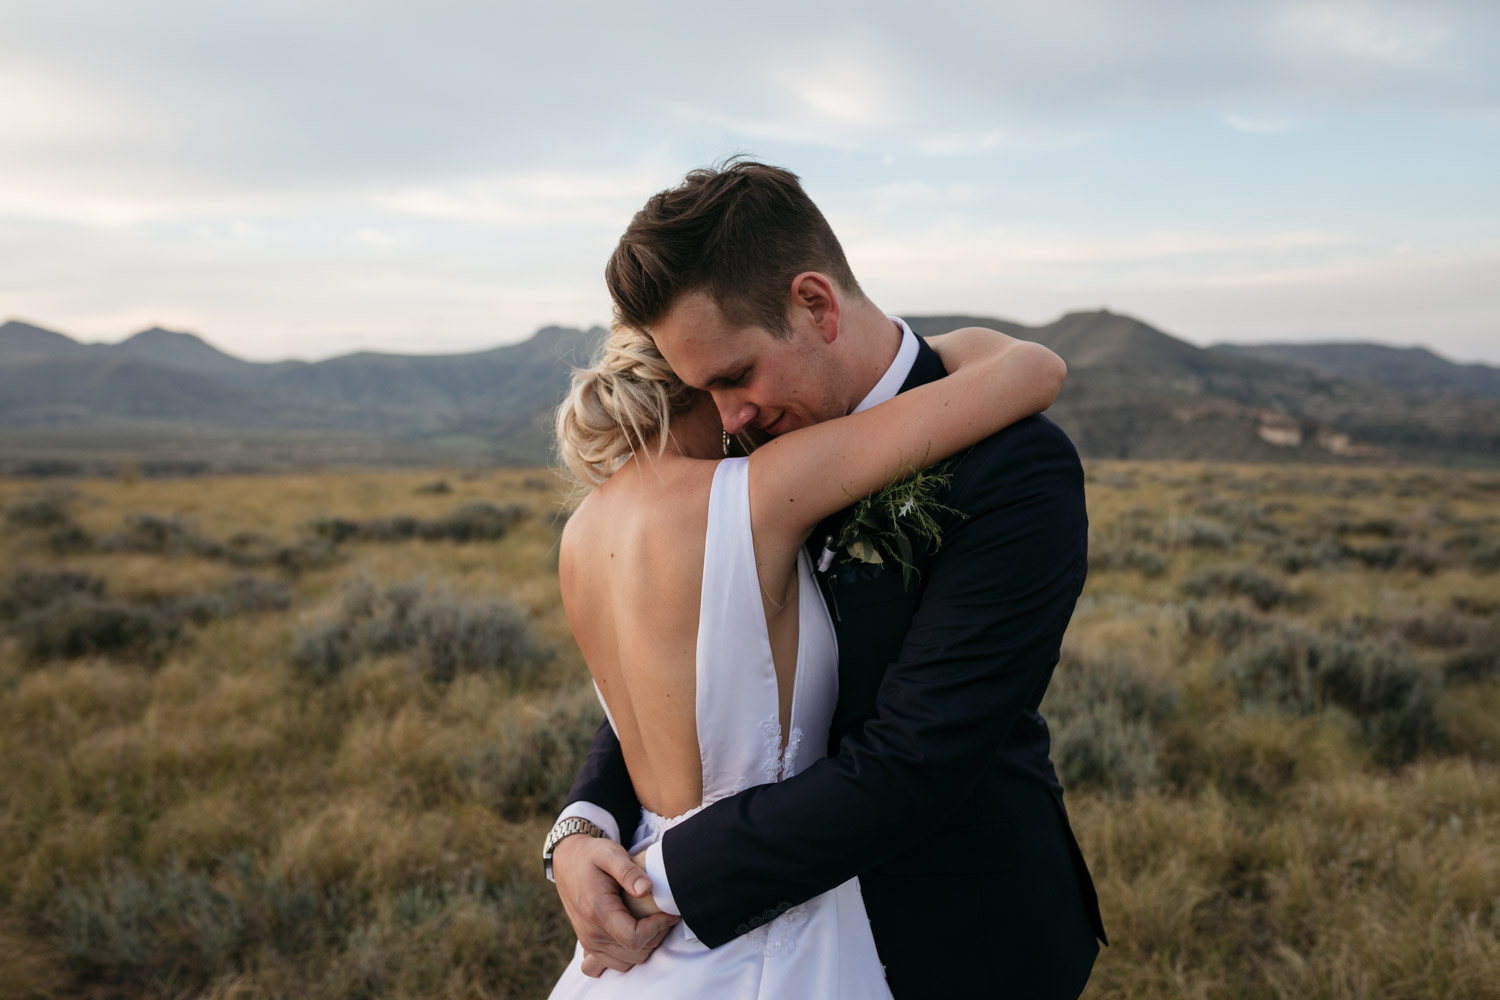 Bride With Backless Modern Wedding Dress And Groom Candid Hug In Mountain Field In Whistler Vancouver